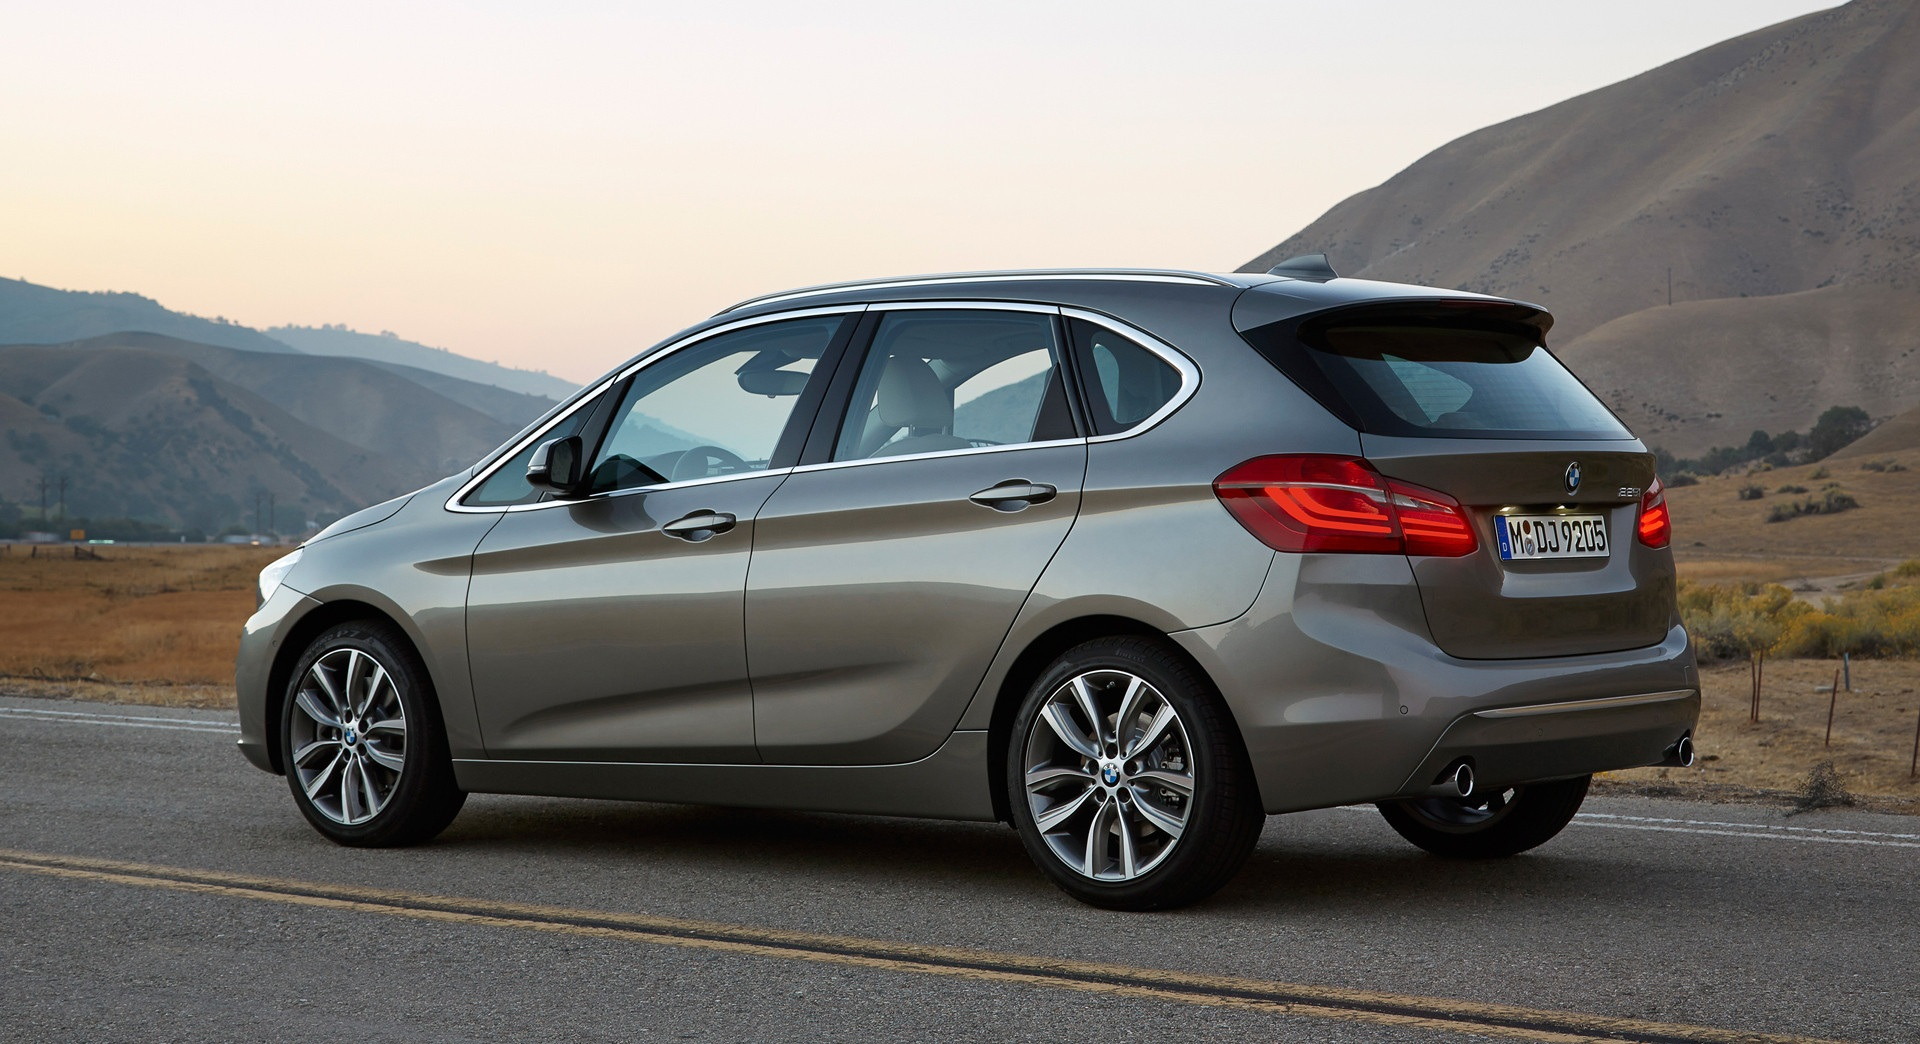 2015 Bmw 2 Series Active Tourer 225i Rear Side Exterior (View 5 of 11)